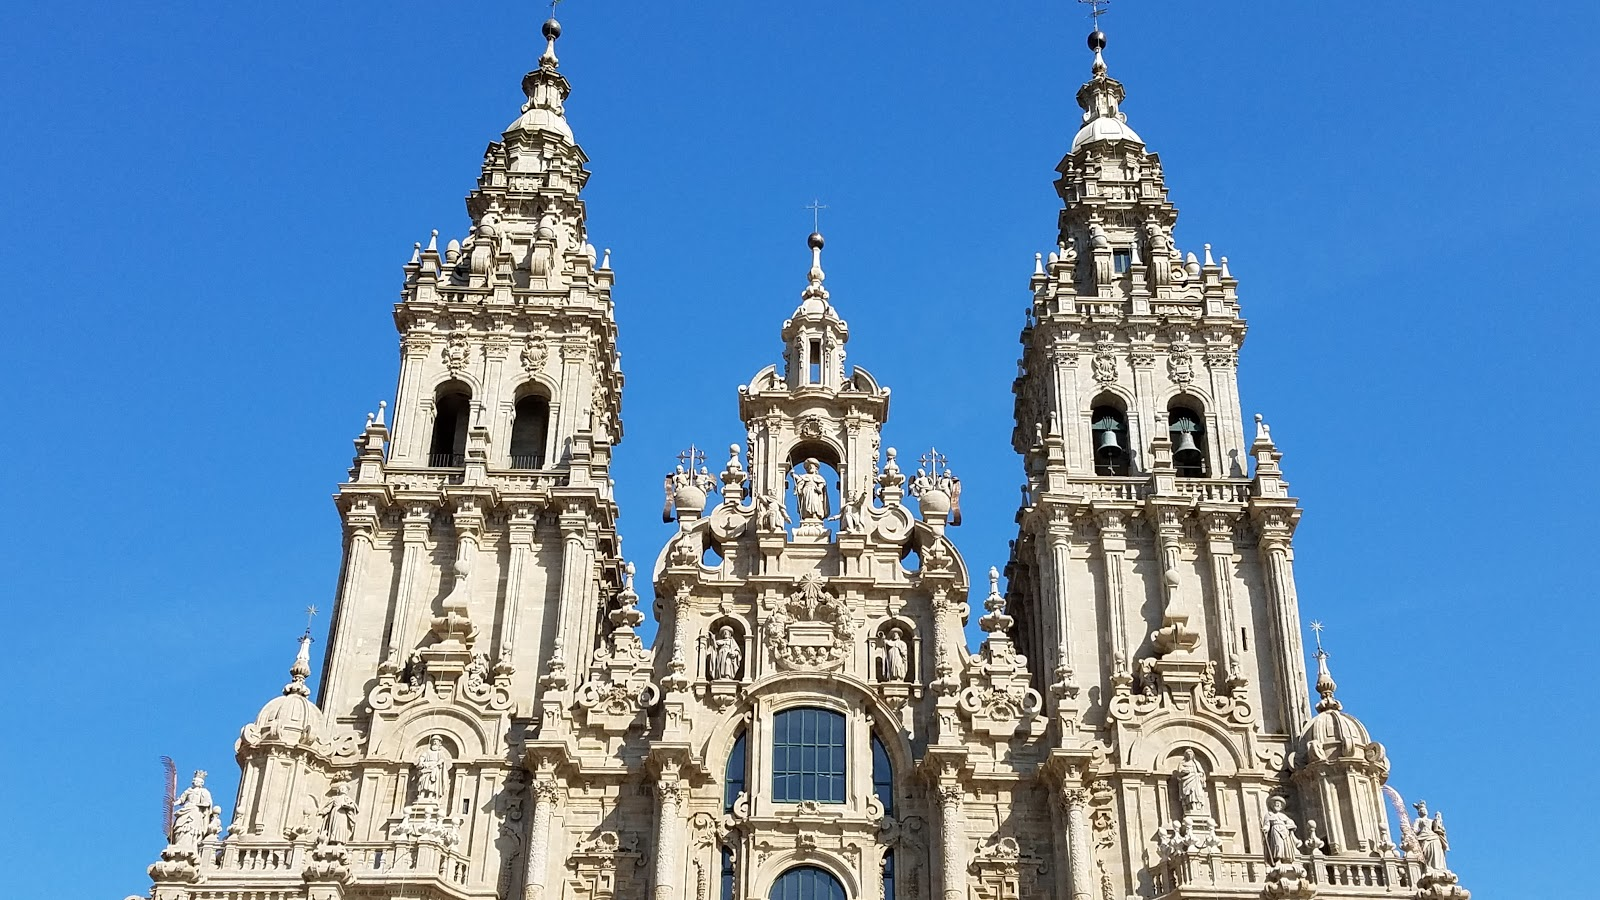 At top center is one of many statues of Santiago that adorn the cathedral. Below him, a star, symbolic of the stars that once led a hermit to discover the Saint's relics over a 1,000 years ago.